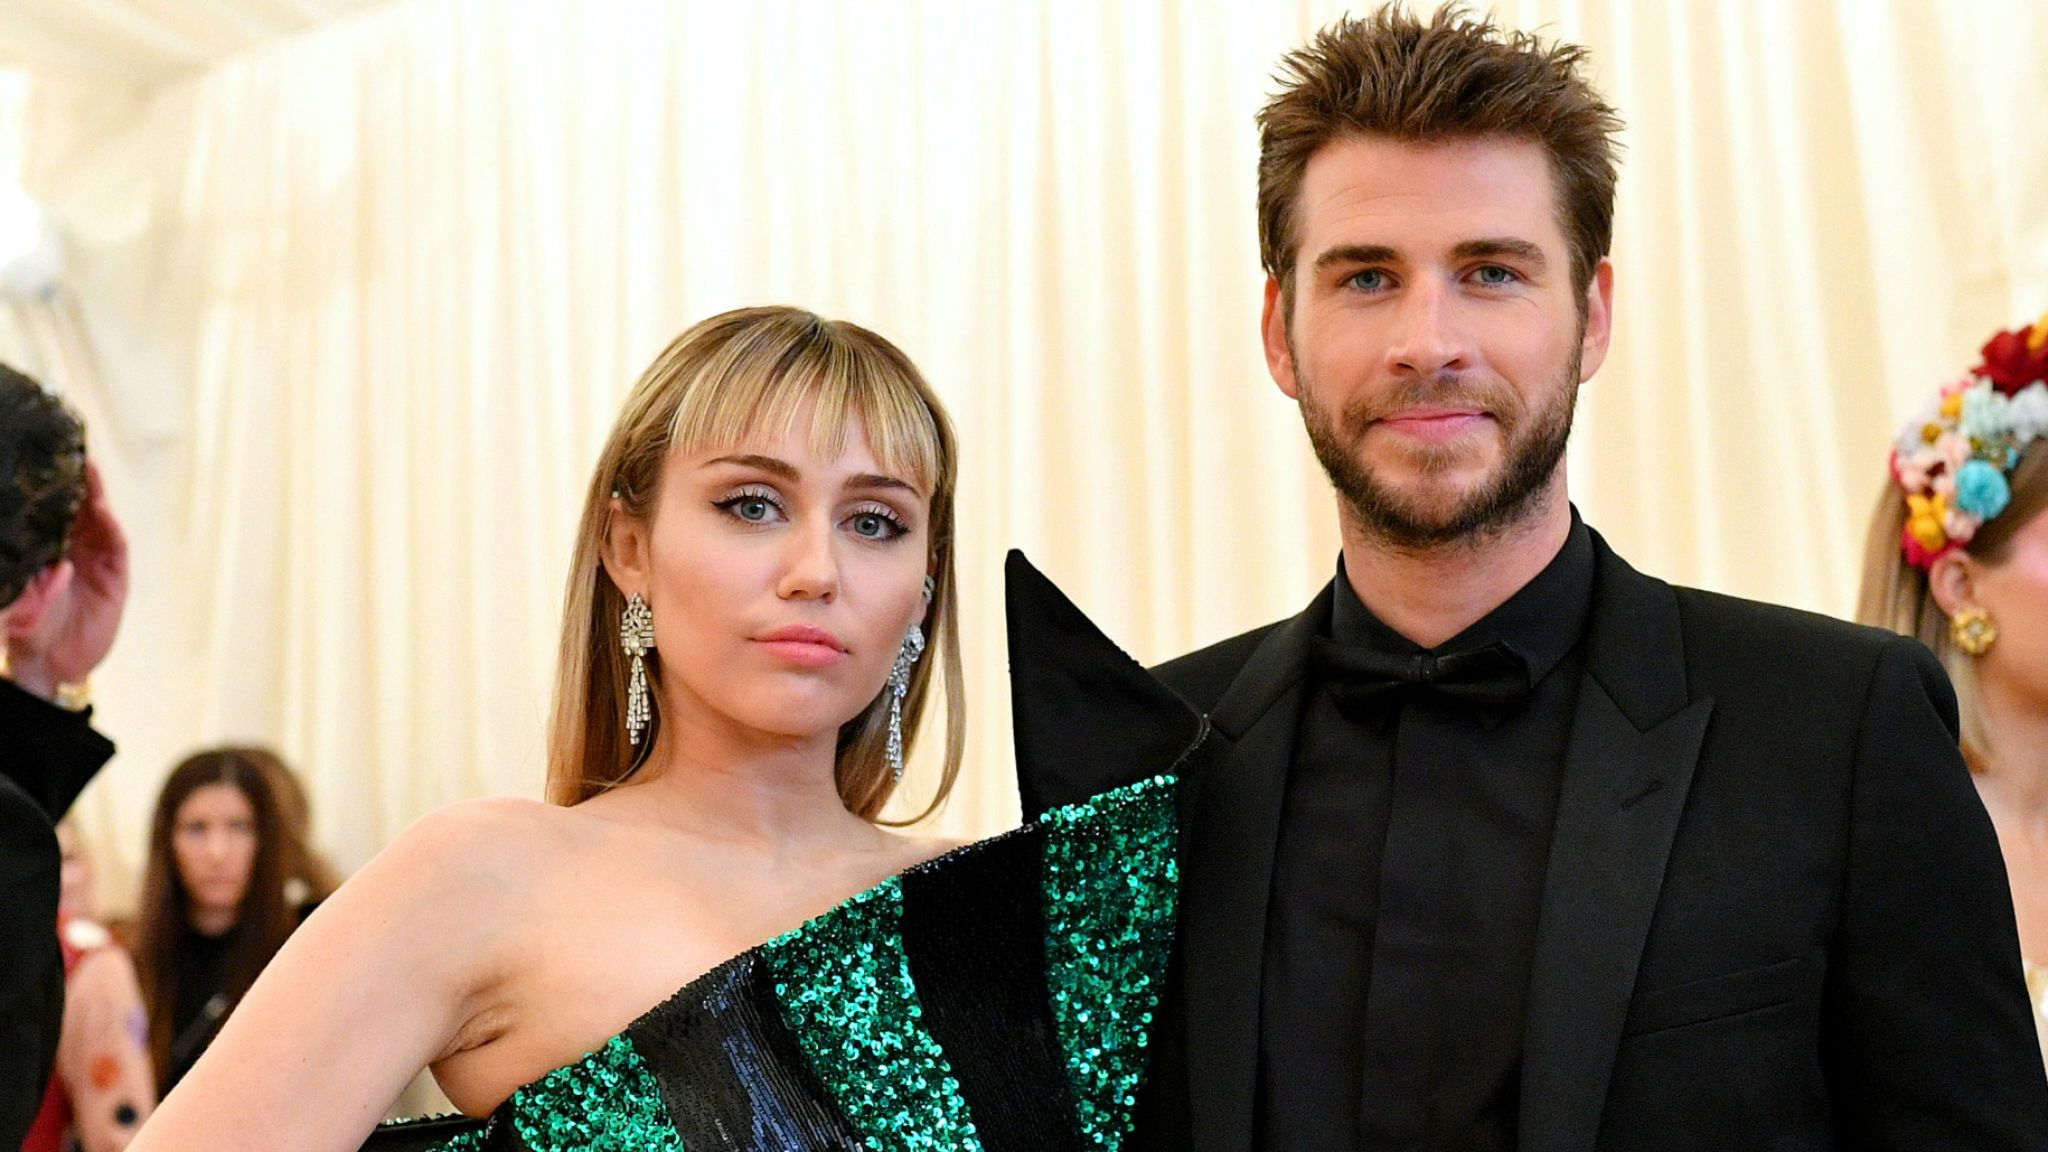 Miley Cyrus drops breakup track Slide Away after Liam Hemsworth split